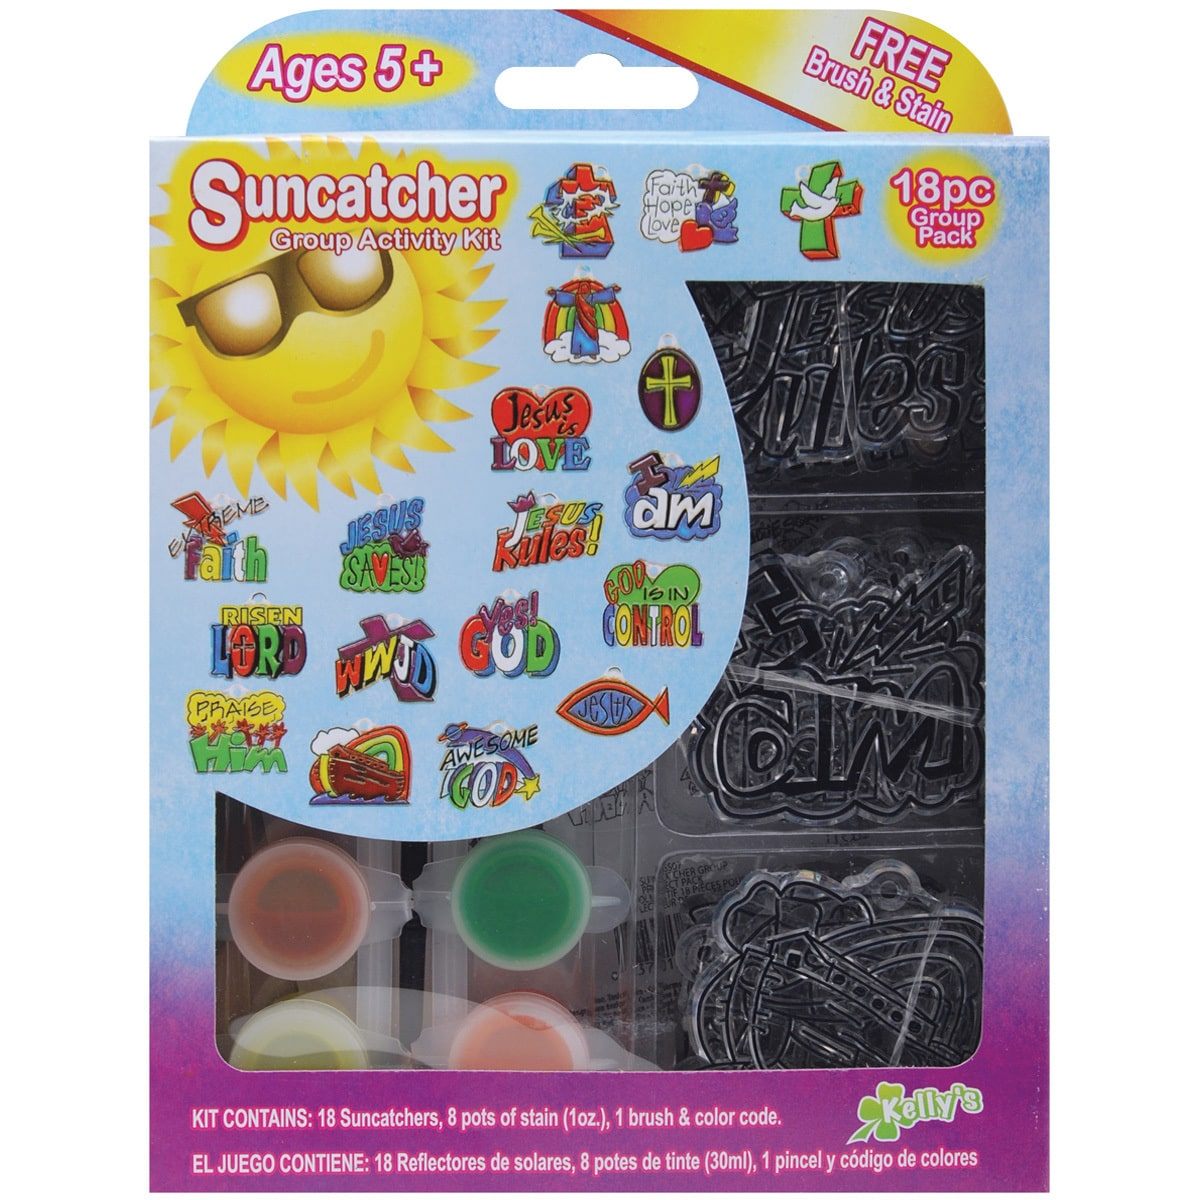 New Image Group Suncatcher Group Activity Kit-Religious 18/Pkg